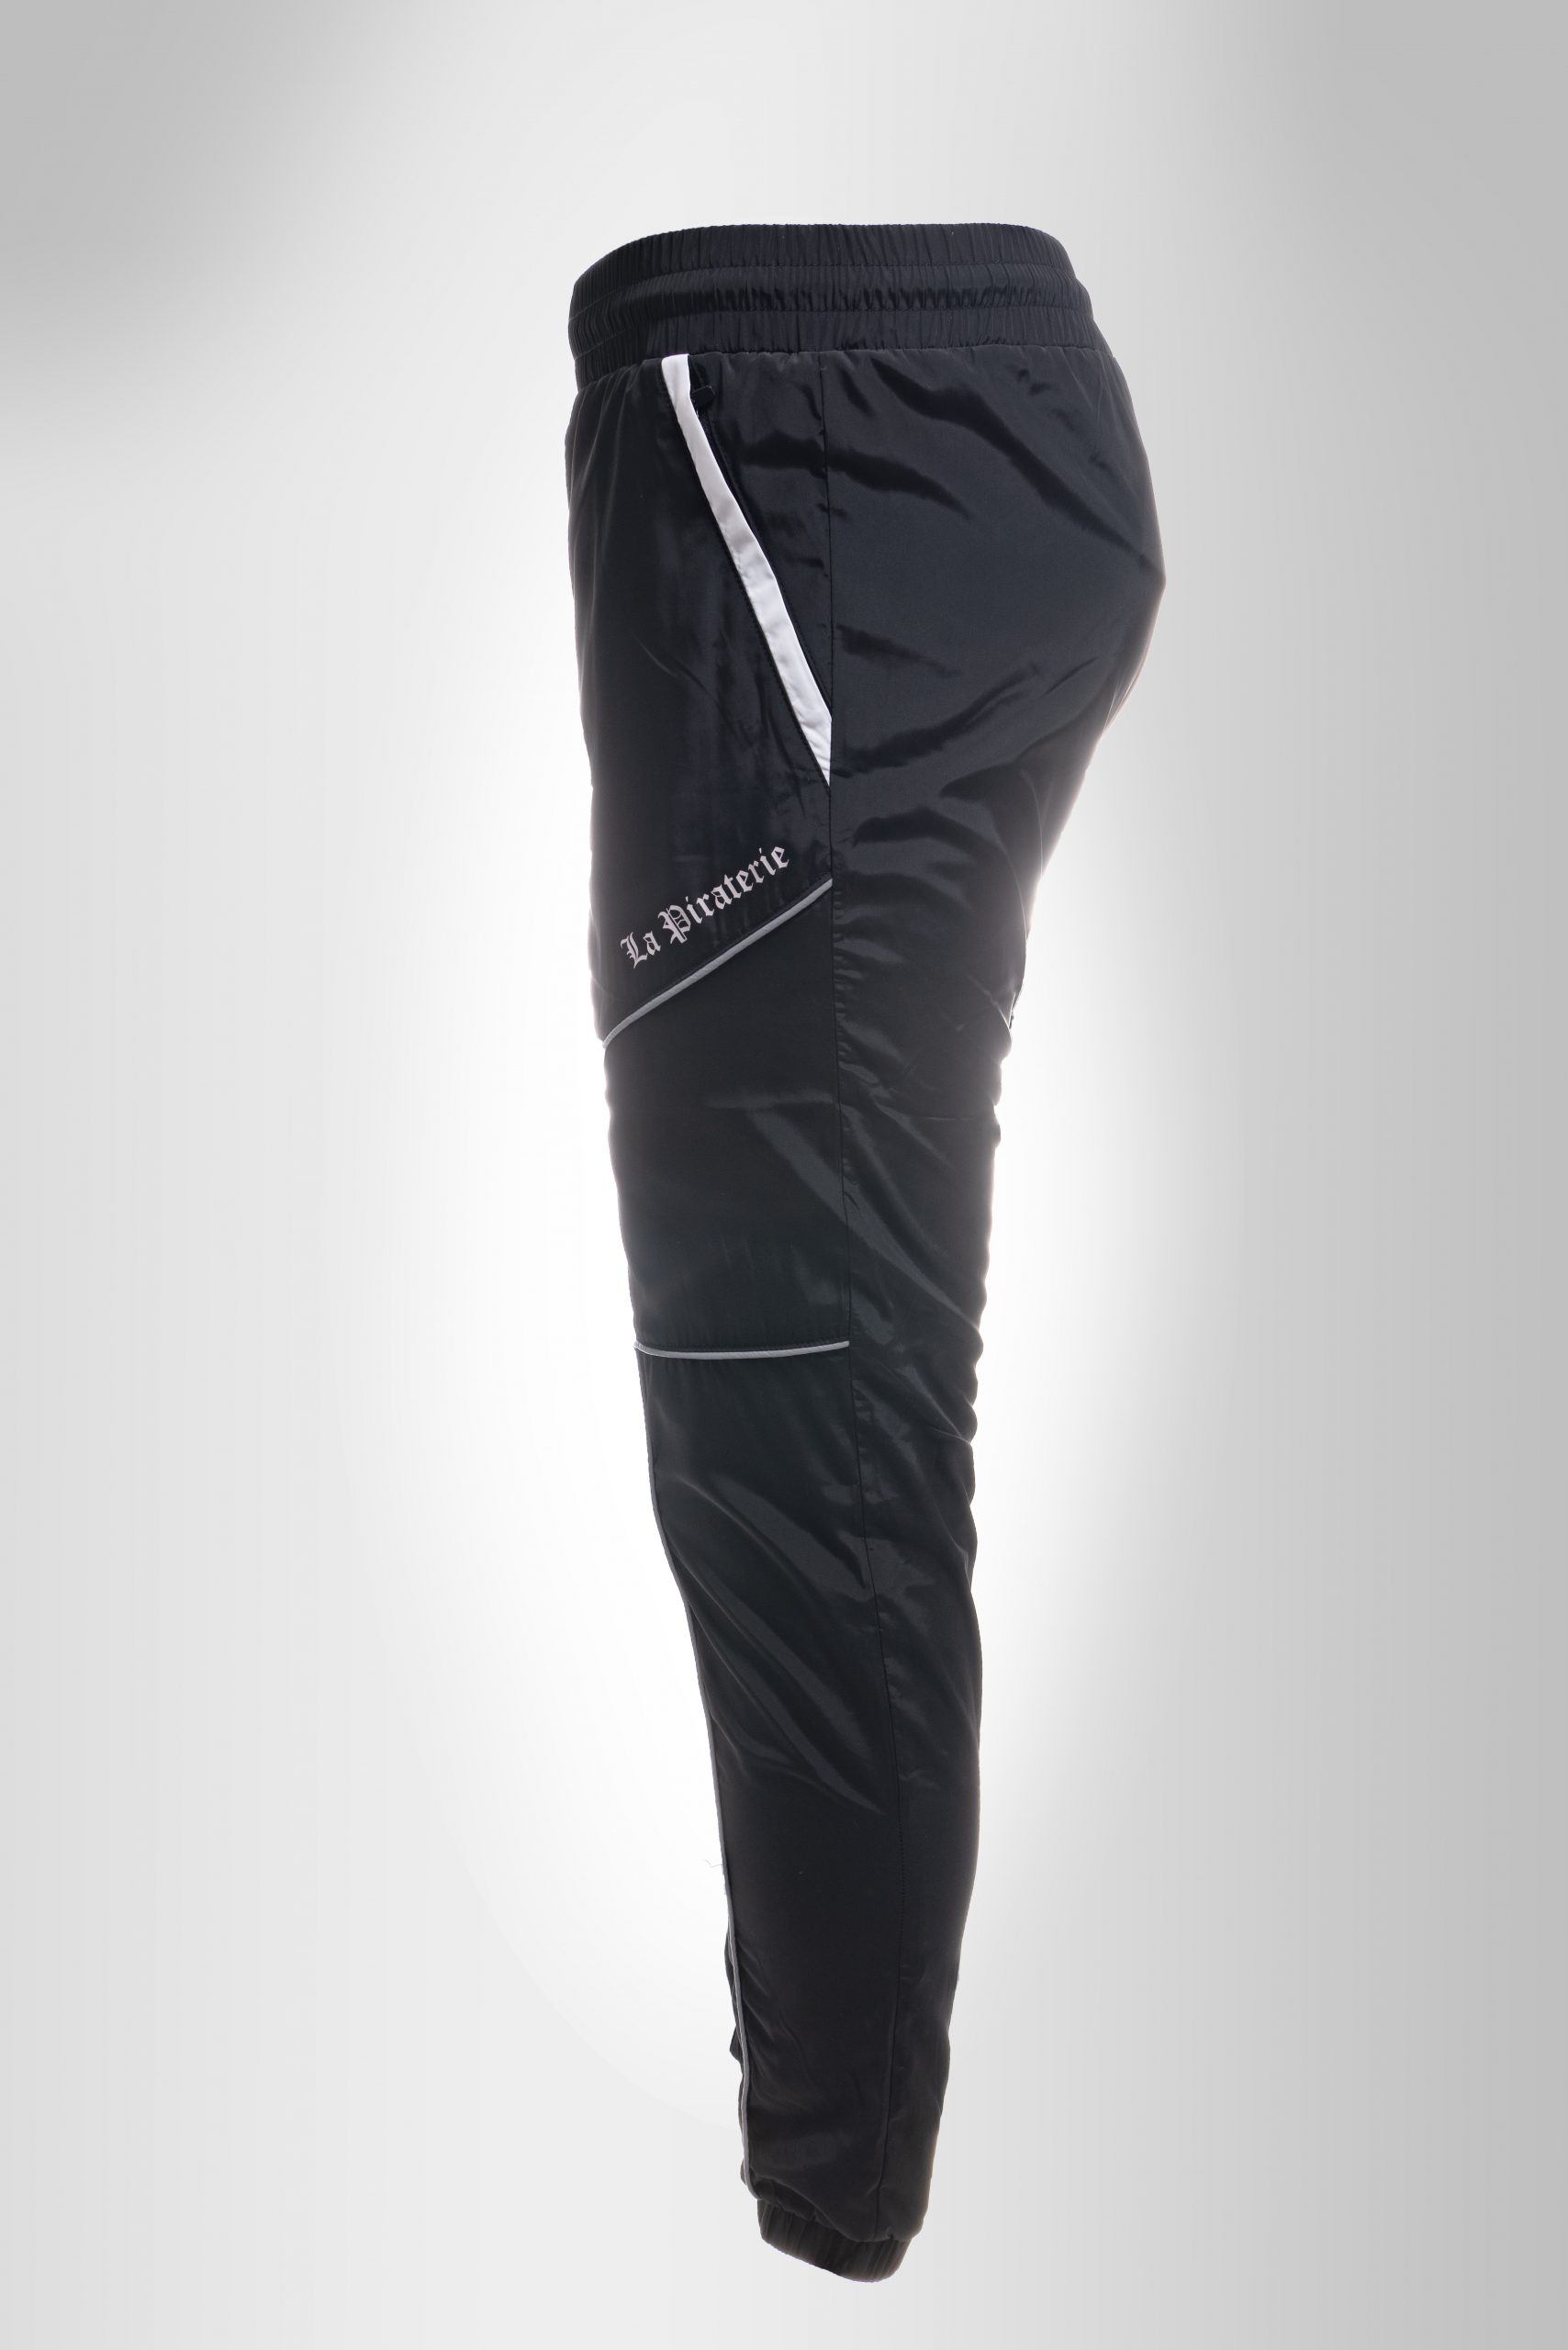 pantalon gps la piraterie